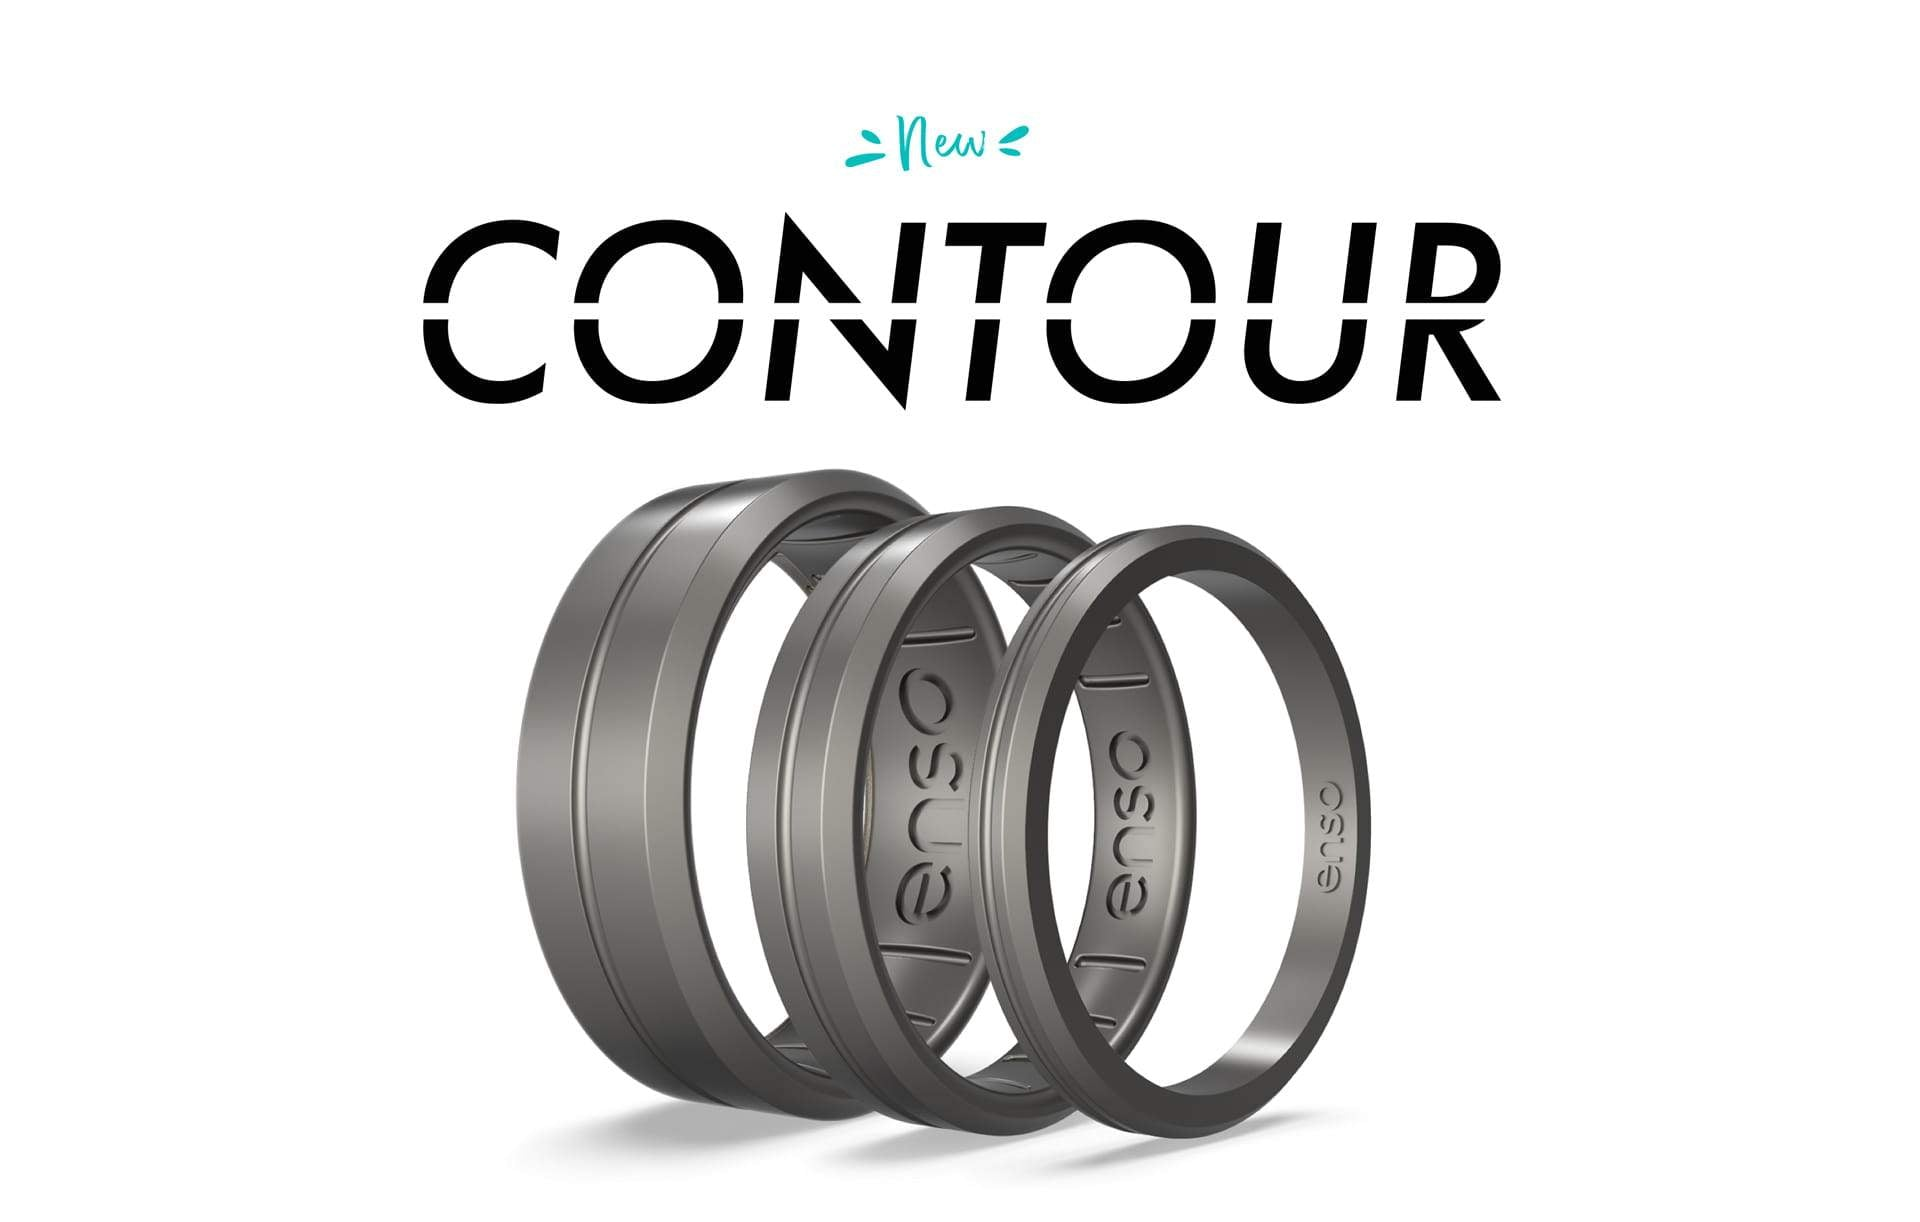 Introducing the all new Contour Silicone Ring - the ultimate in flexible jewelry